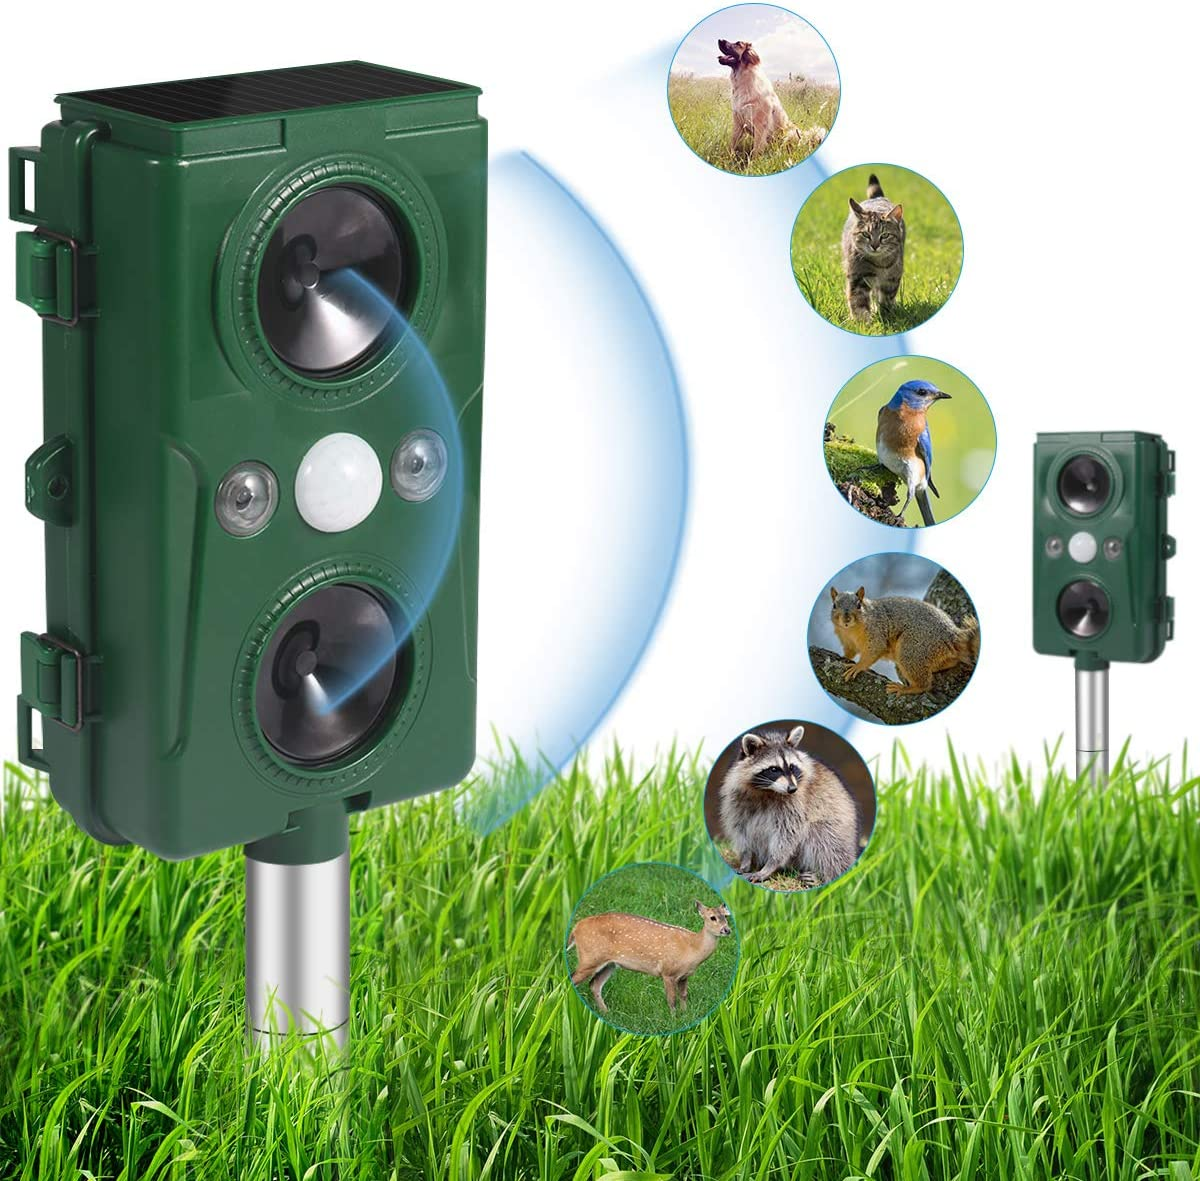 Ultrasonic Animal Repeller,Solar Powered and Waterproof PIR Sensor Repeller,Motion Activated with Flashing LED Light and Sound Effectively Scares Away Cats, Dogs, Foxes, Birds, Skunks, Rod